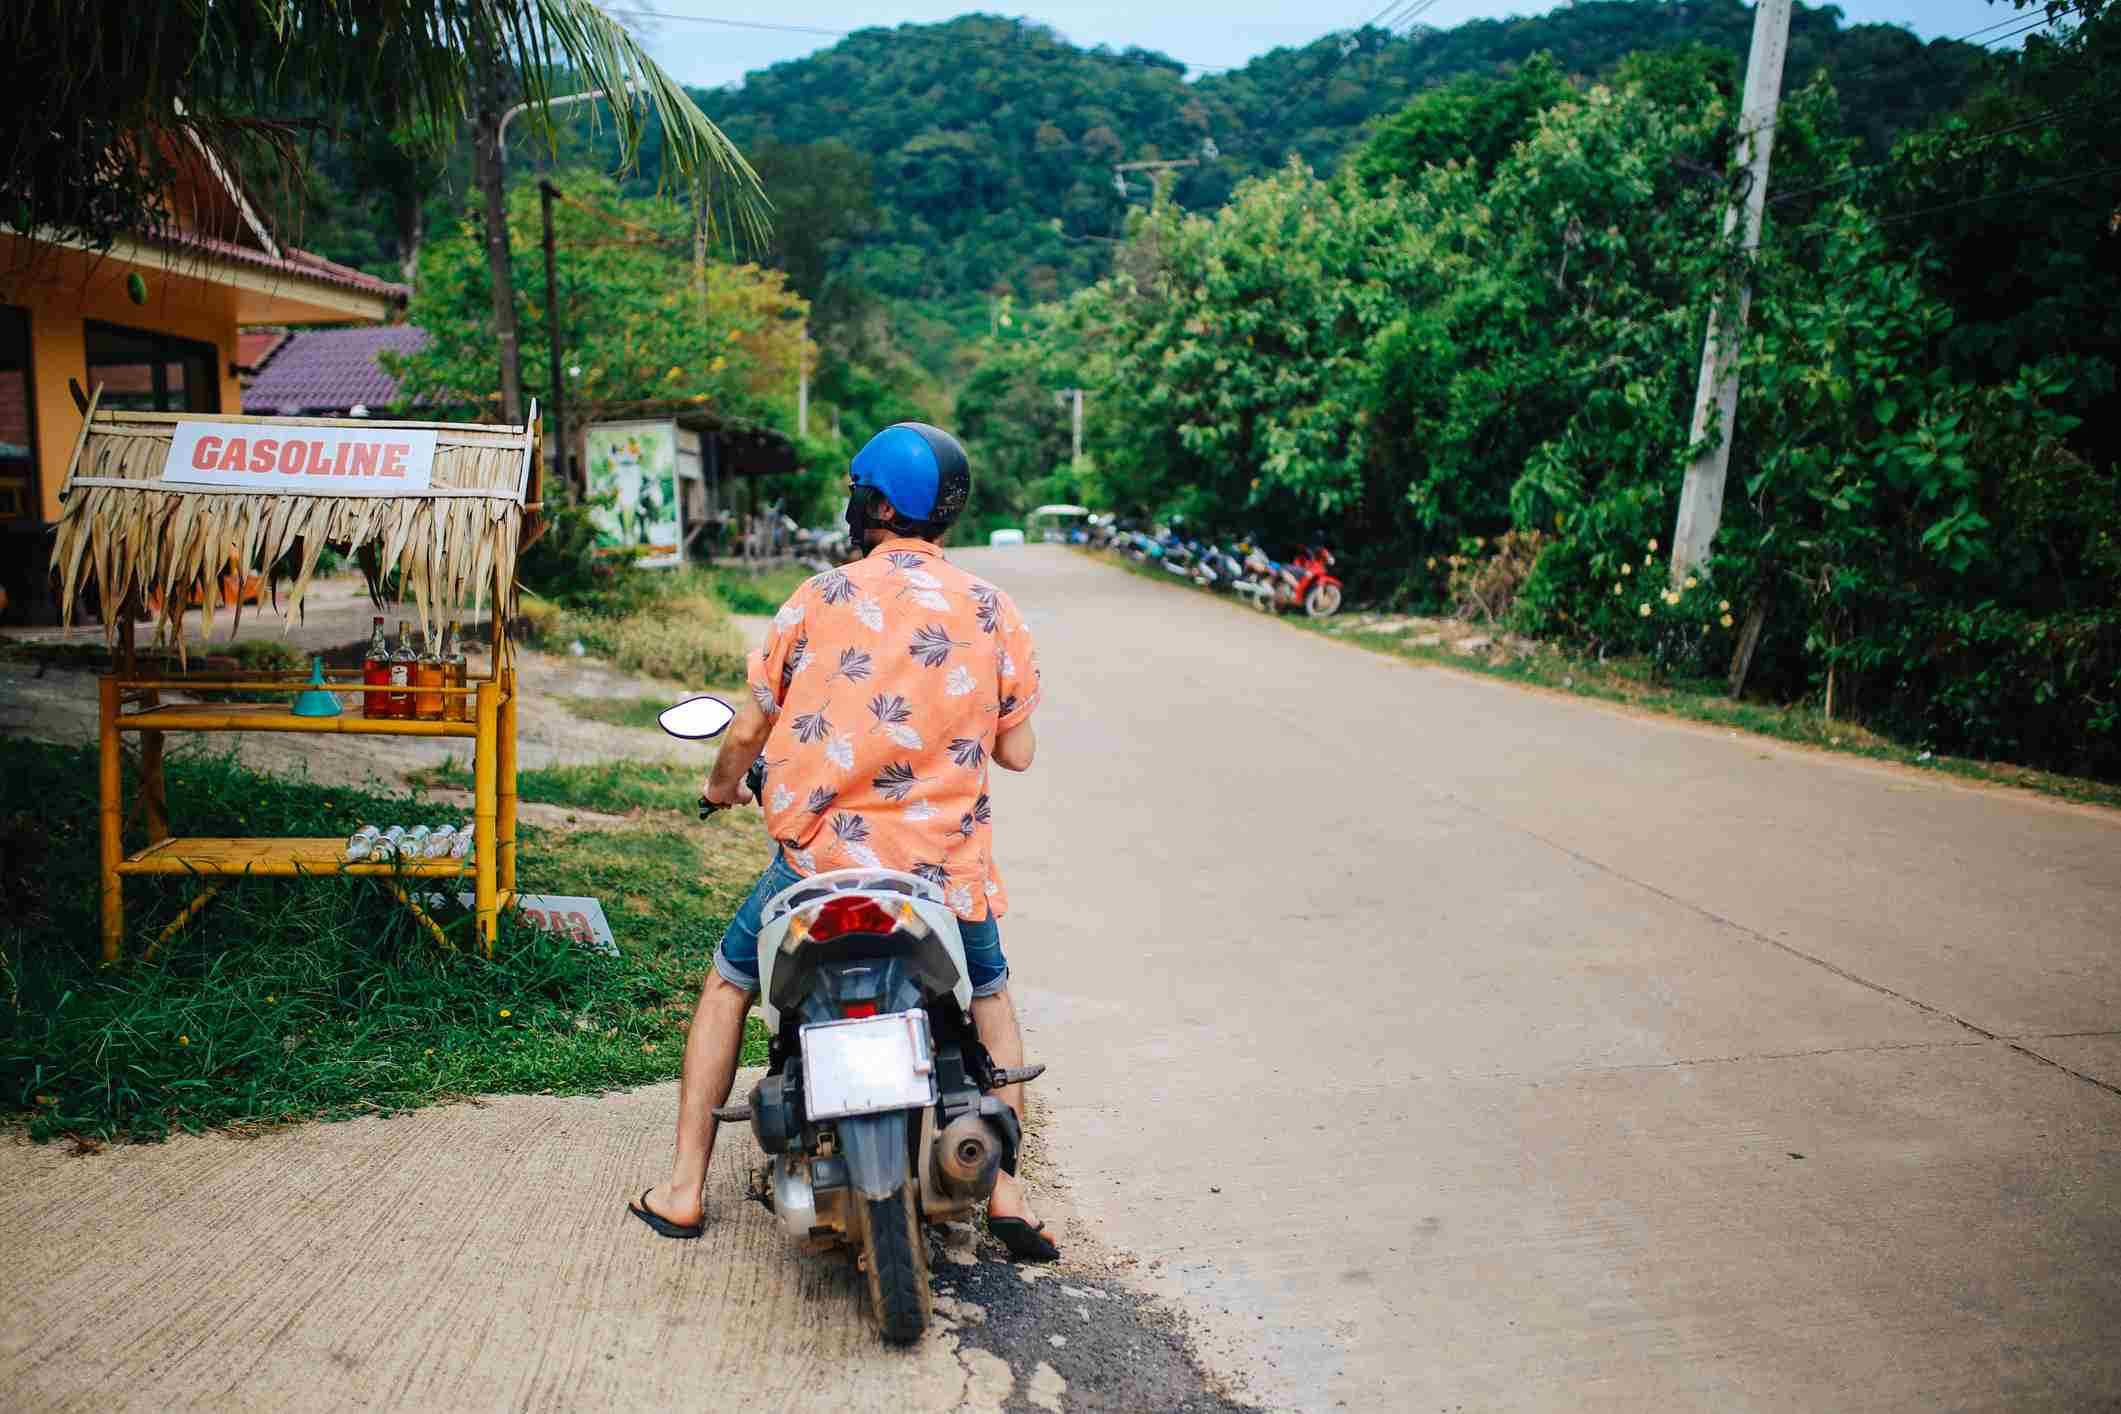 A man on a motorbike stops at a small gasoline stand, Koh Lanta